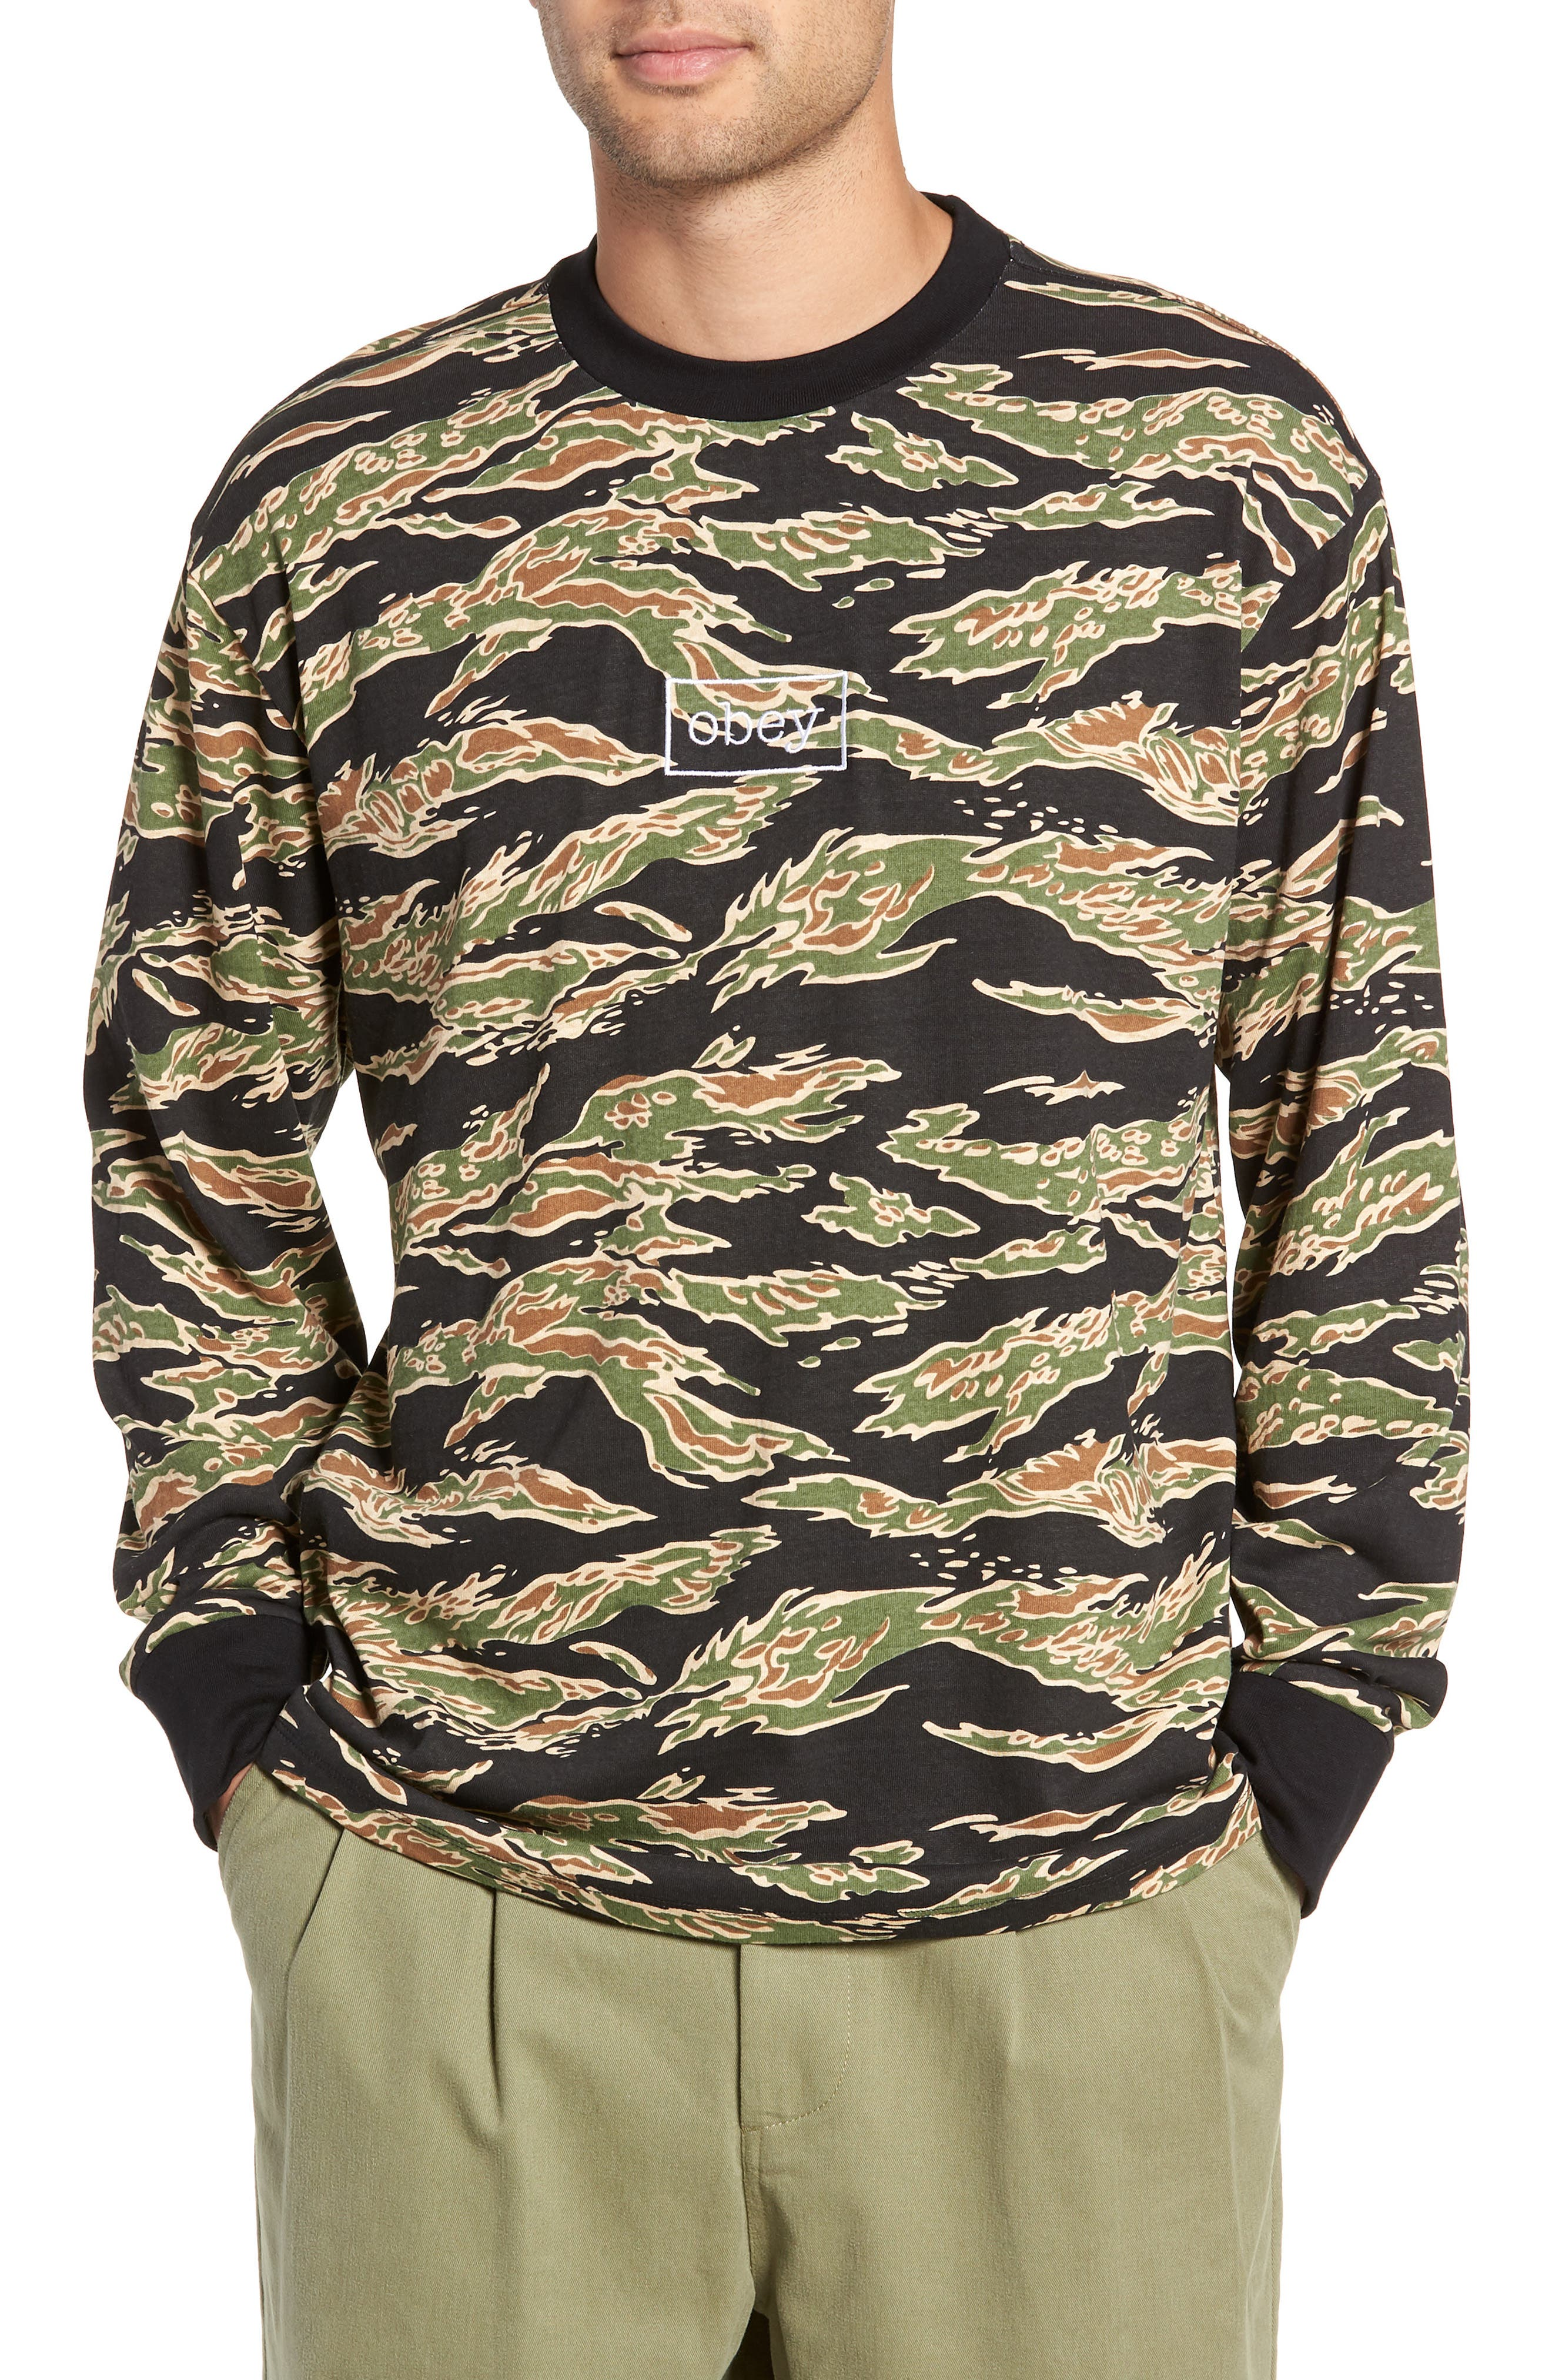 Flight Classic T-Shirt,                             Main thumbnail 1, color,                             TIGER CAMO